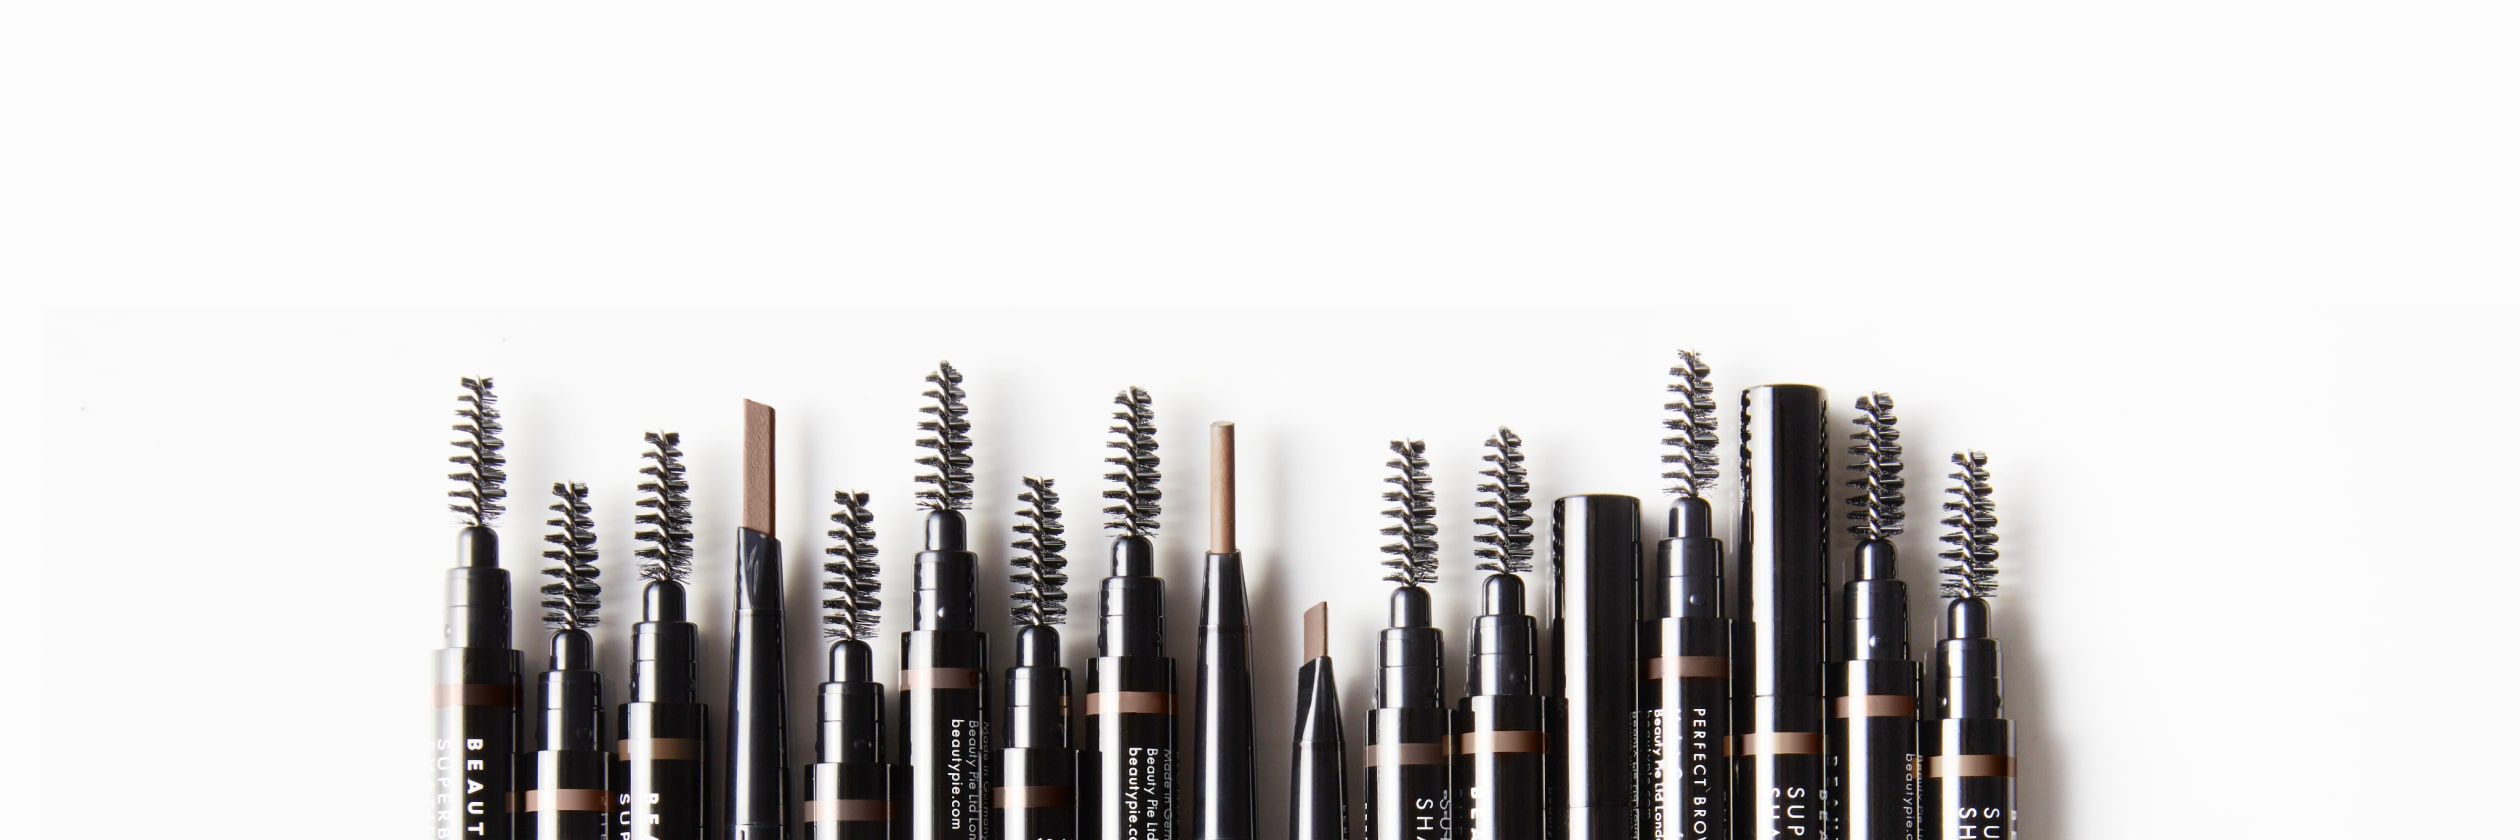 AND THESE DELUXE K-BEAUTY ANGLED BROW SHAPING PENCILS ARE JUST $9.43